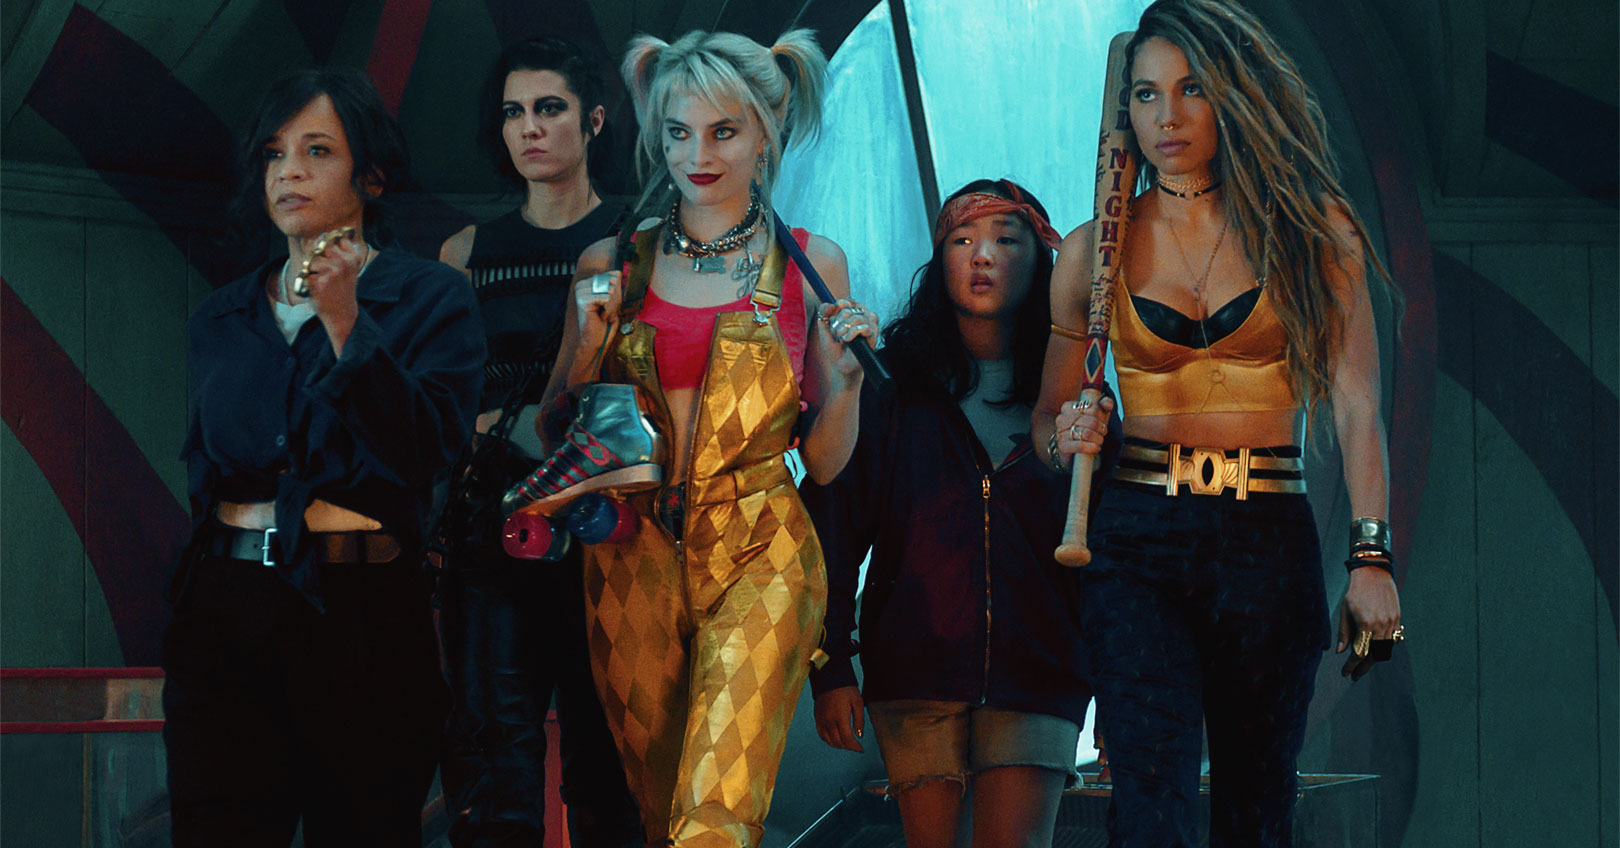 Birds of Prey (and the Fantabulous Emancipation of One Harley Quinn) - Rosie Perez, Mary Elizabeth Winstead, Margot Robbie, Ella Jay Basco, and Jurnee Smollett-Bell